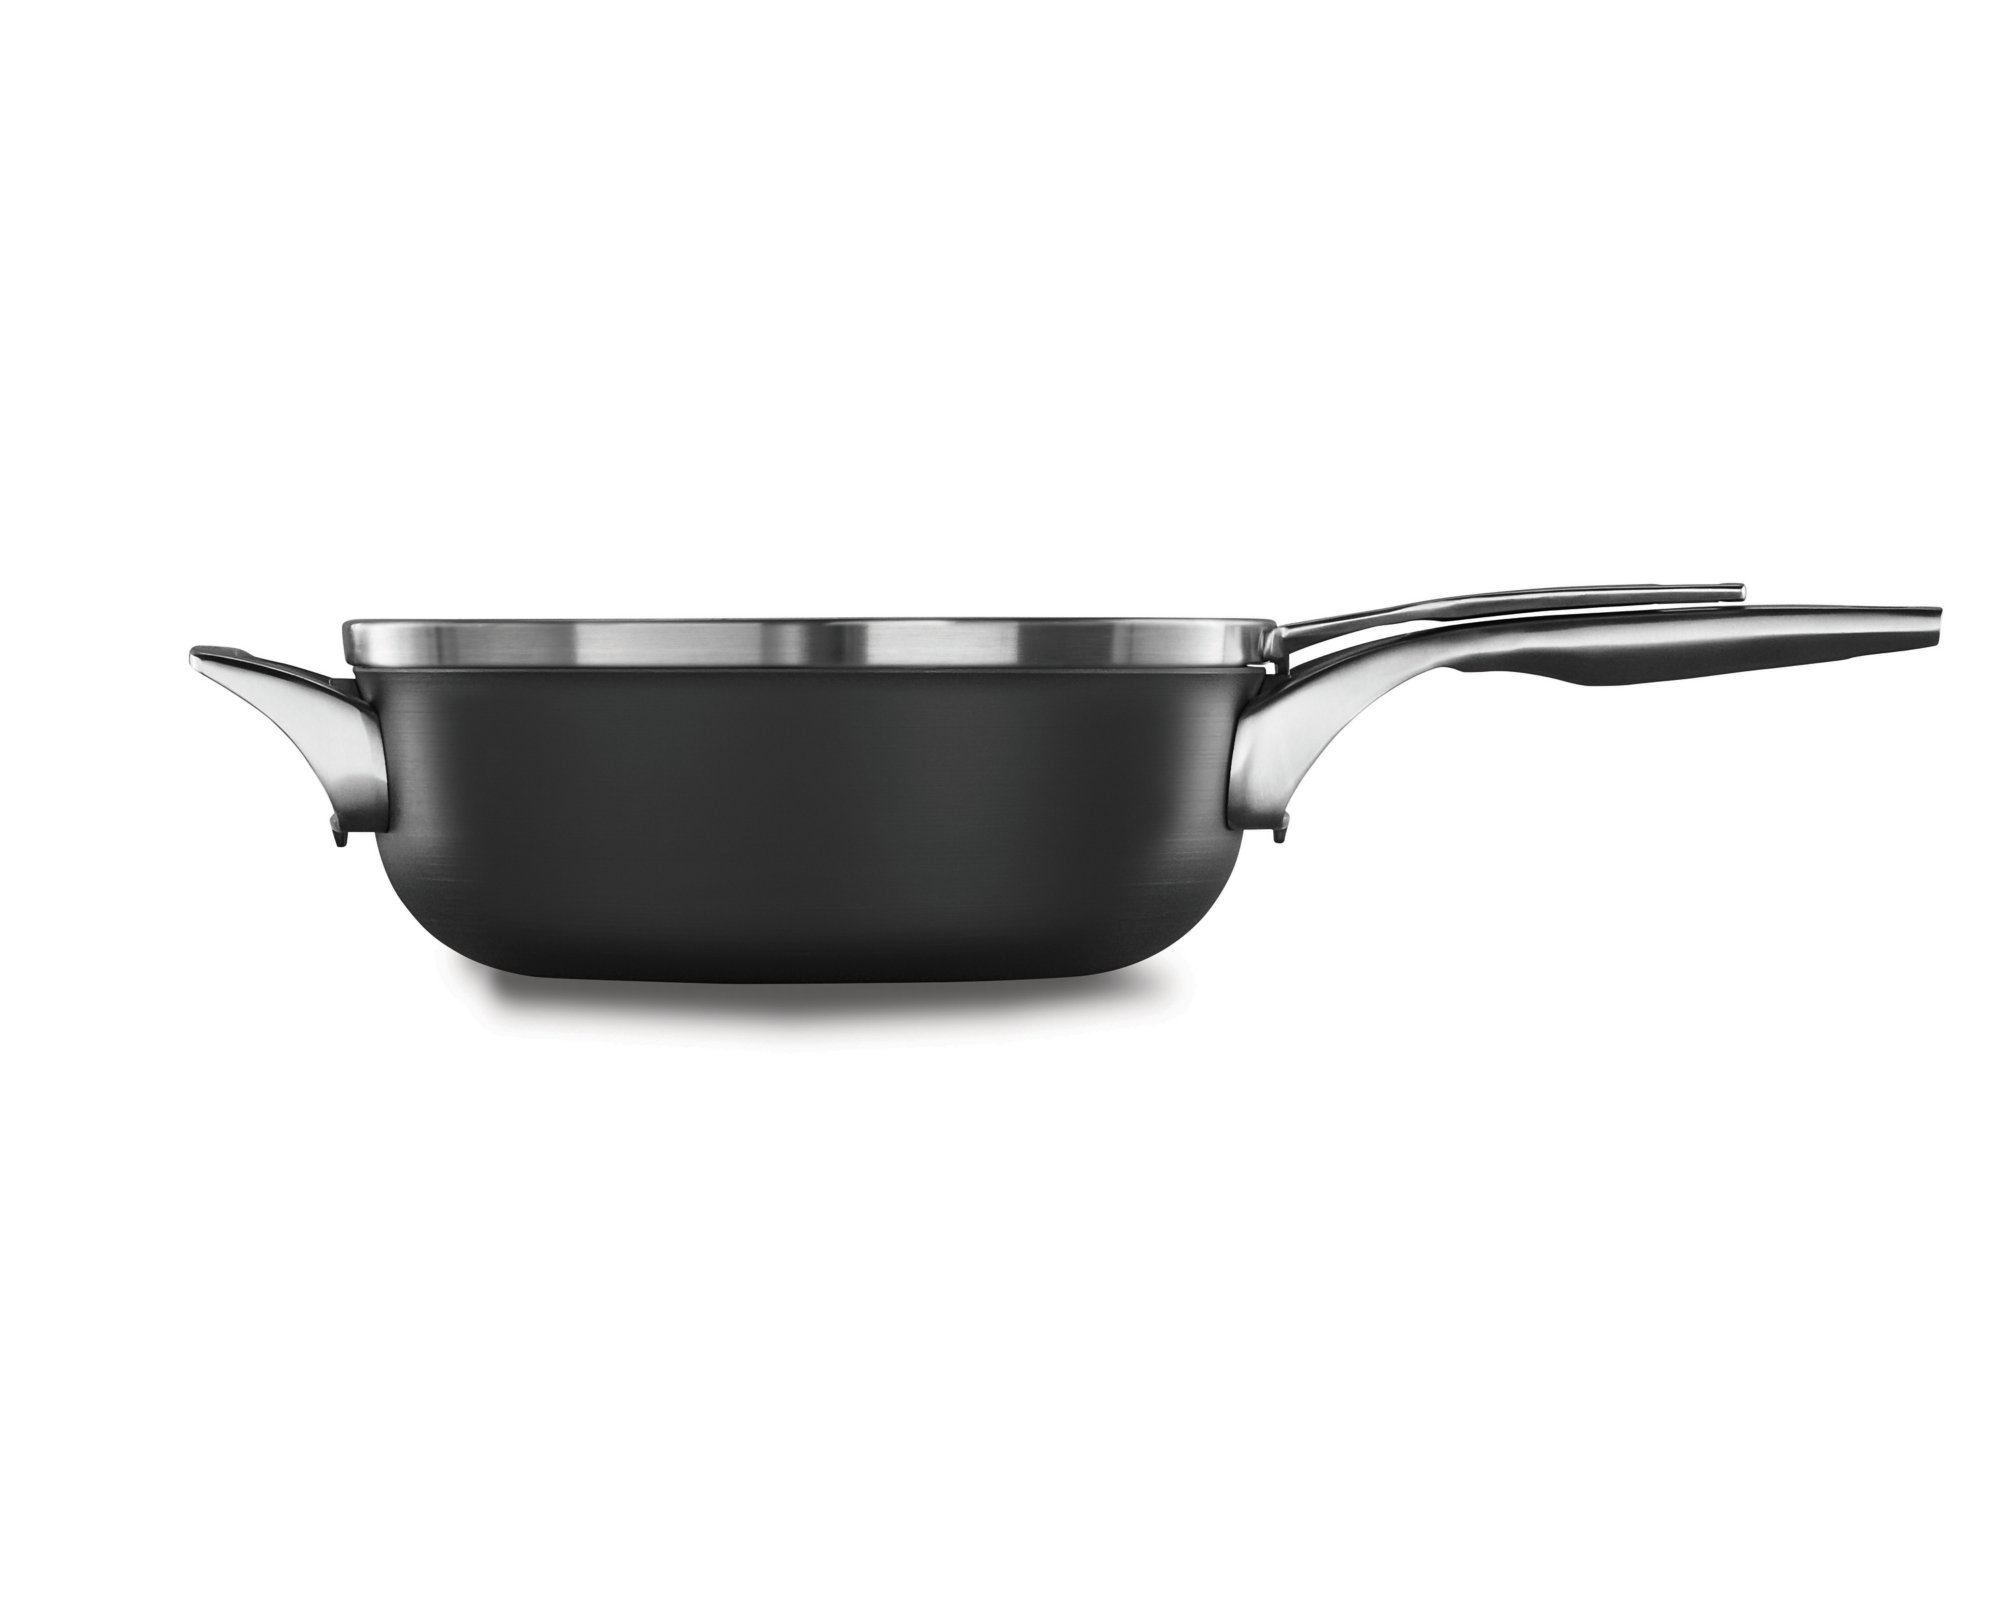 Calphalon Premier™ Space Saving Hard Anodized Nonstick 4 qt. Chef's Pan with Cover